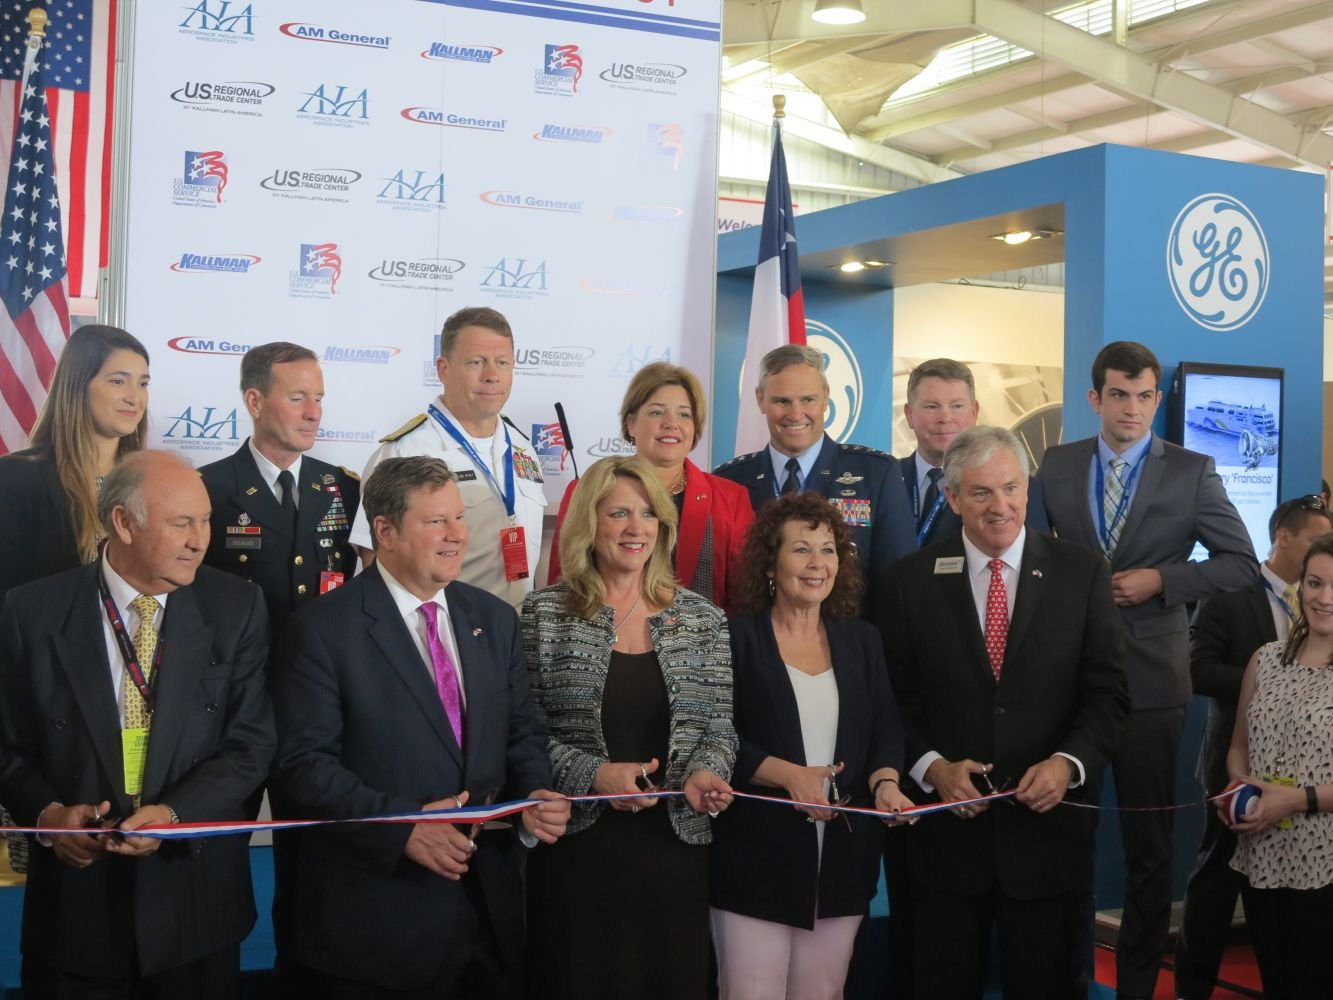 USAF Secretary James Reaffirms Ties with Latin American Partners